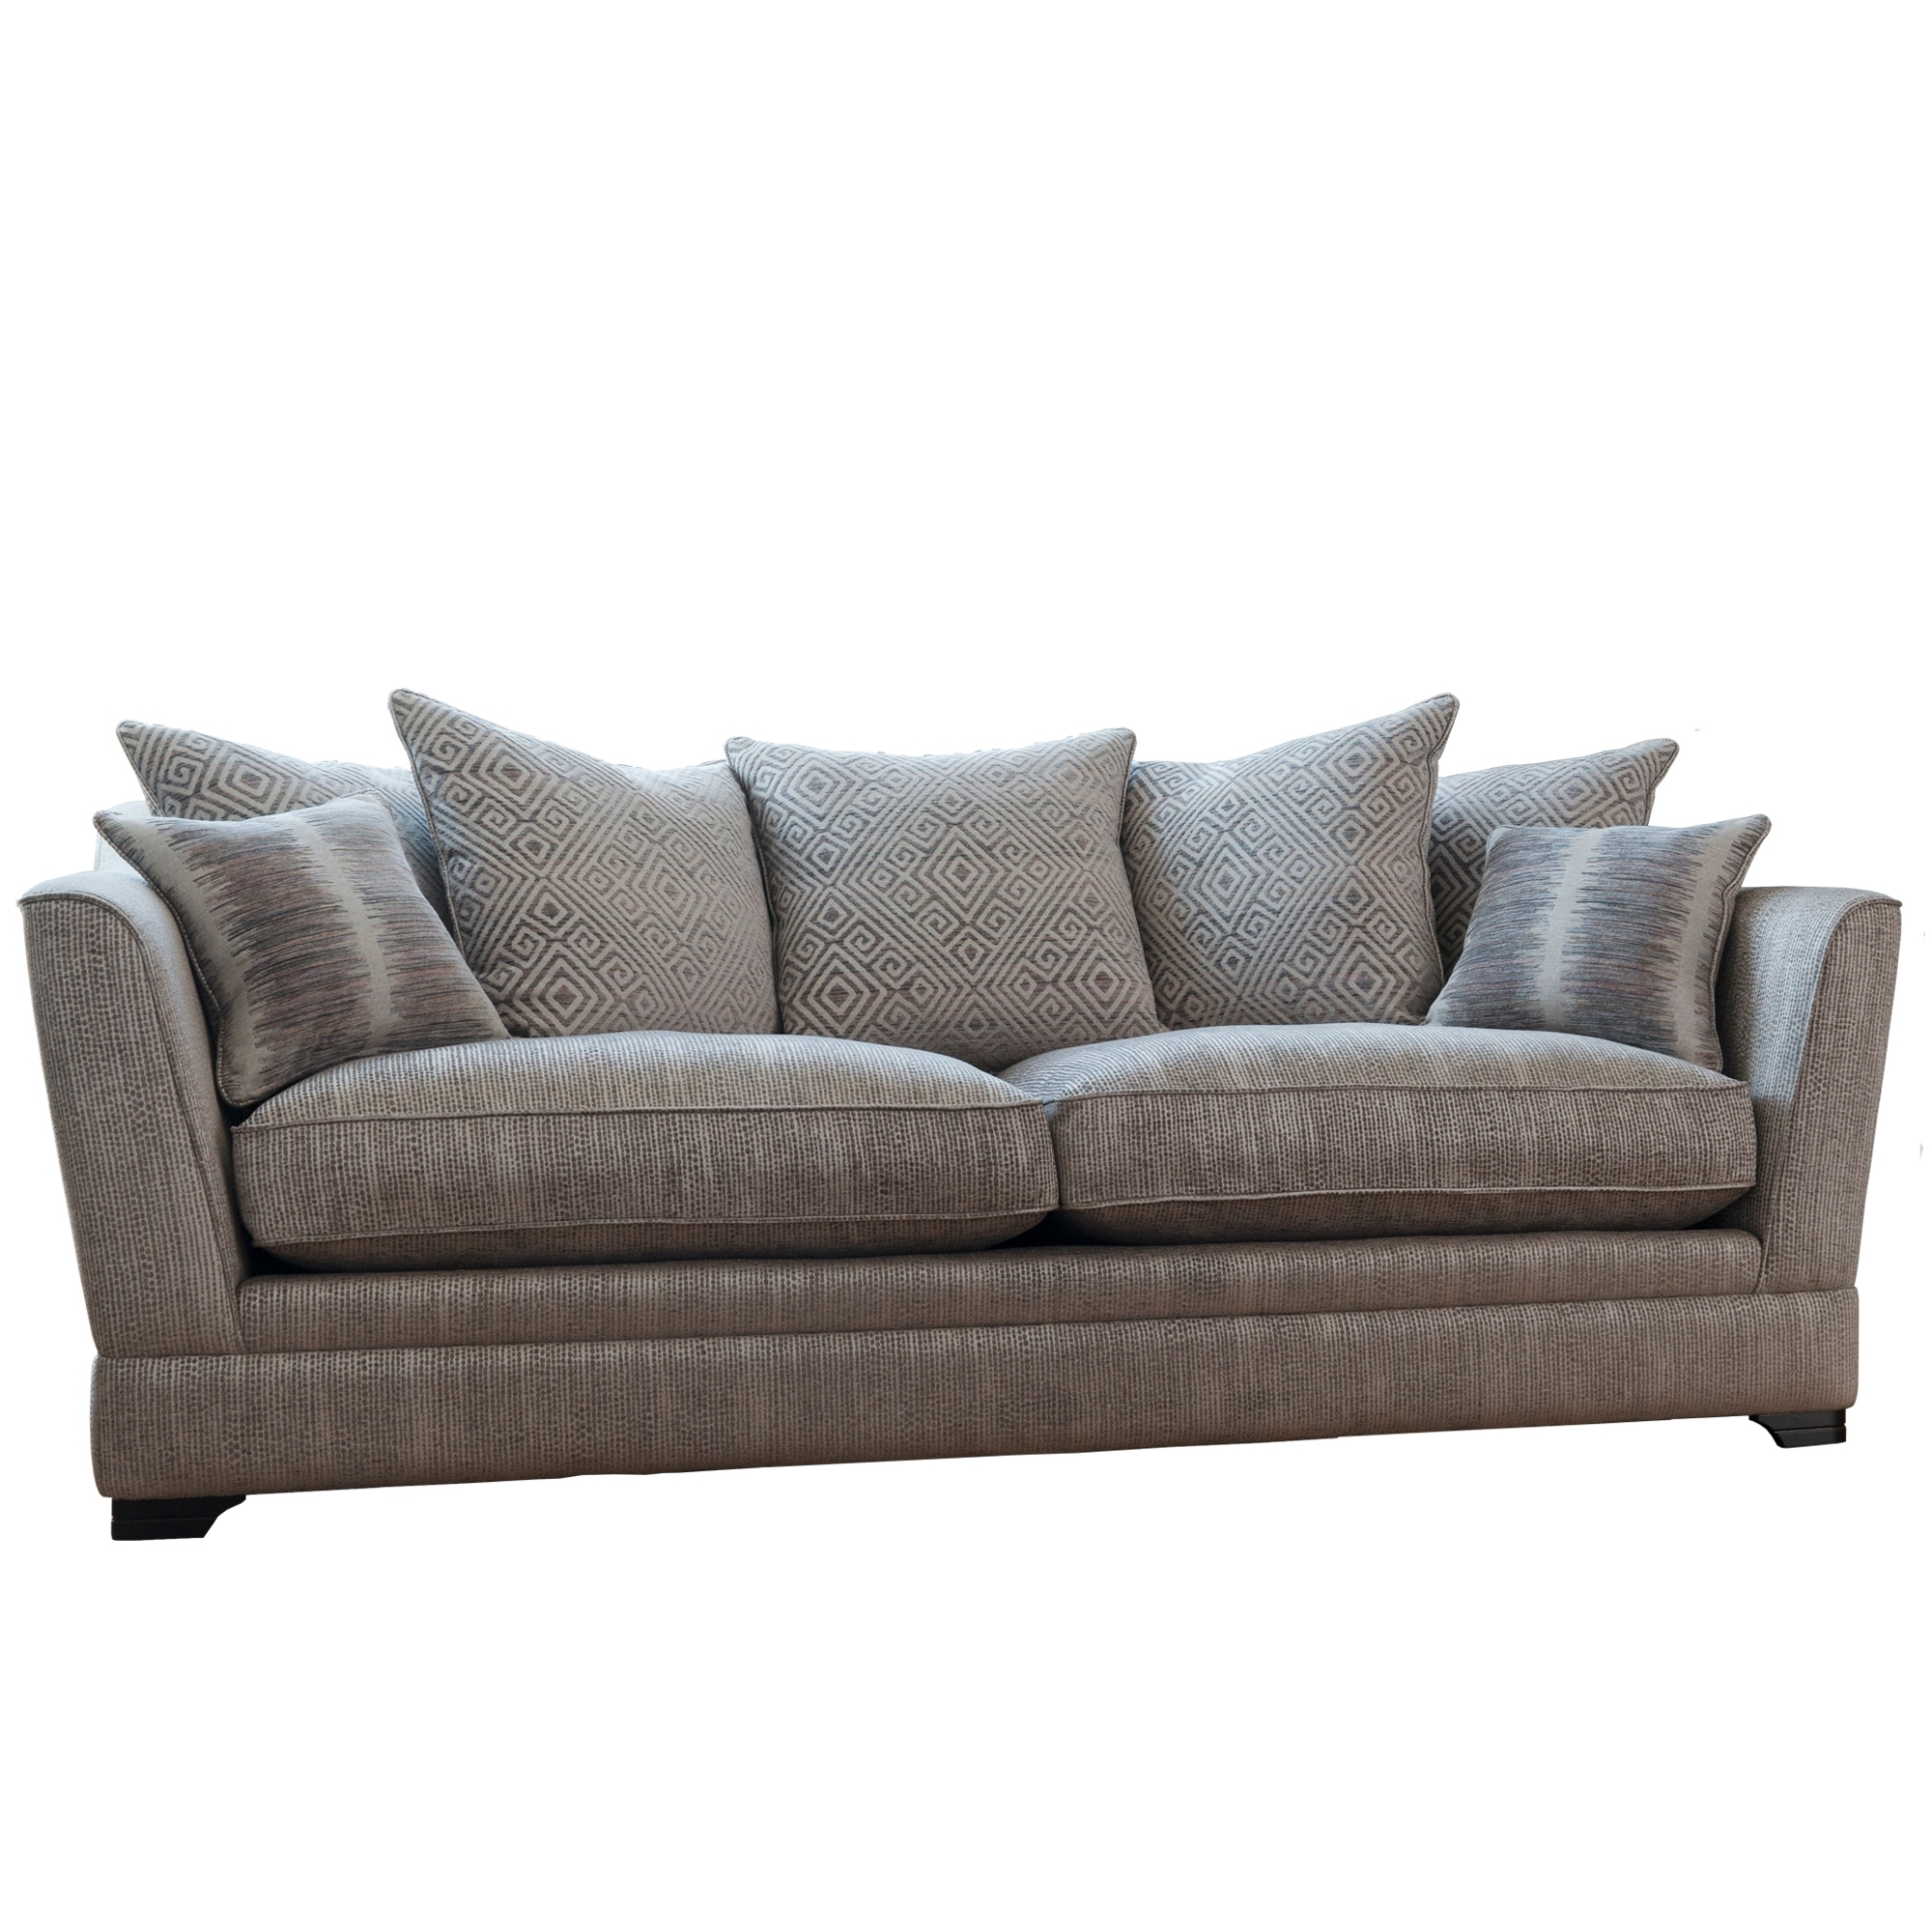 Parker Knoll Sloane Grand Sofa All Sofas Cookes Furniture